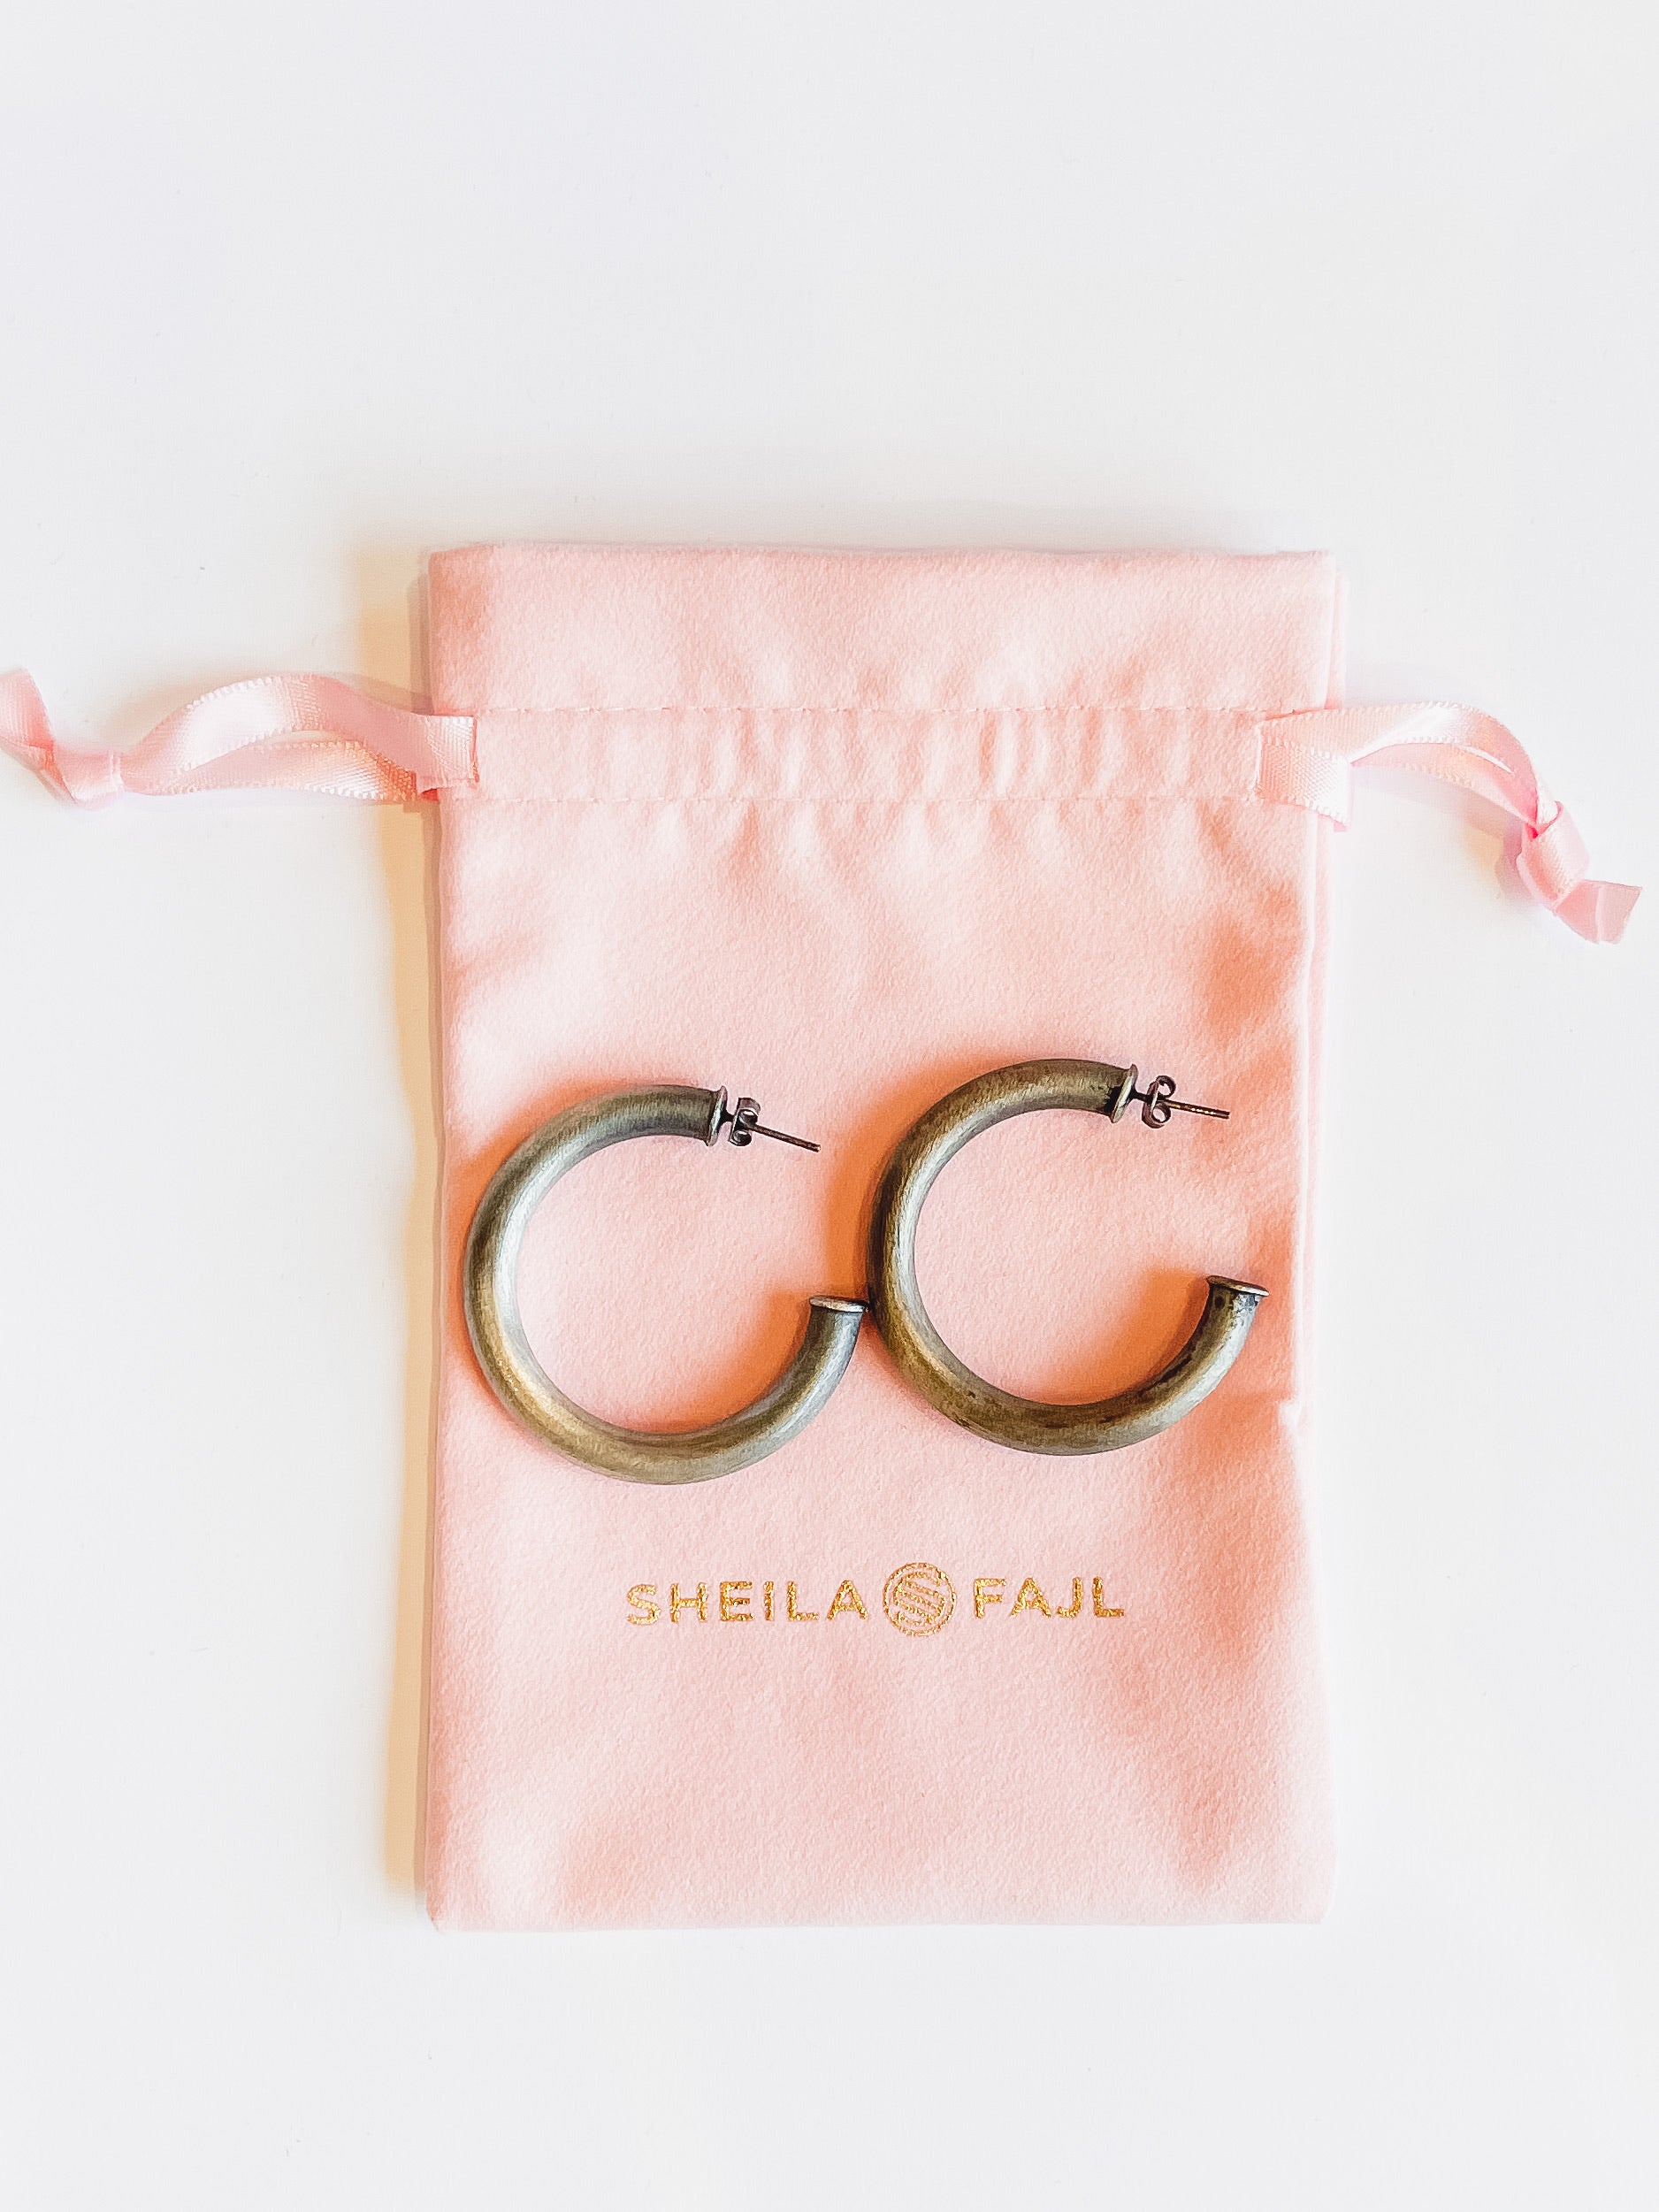 Sheila Fajl Chantal Hoops -Old Silver